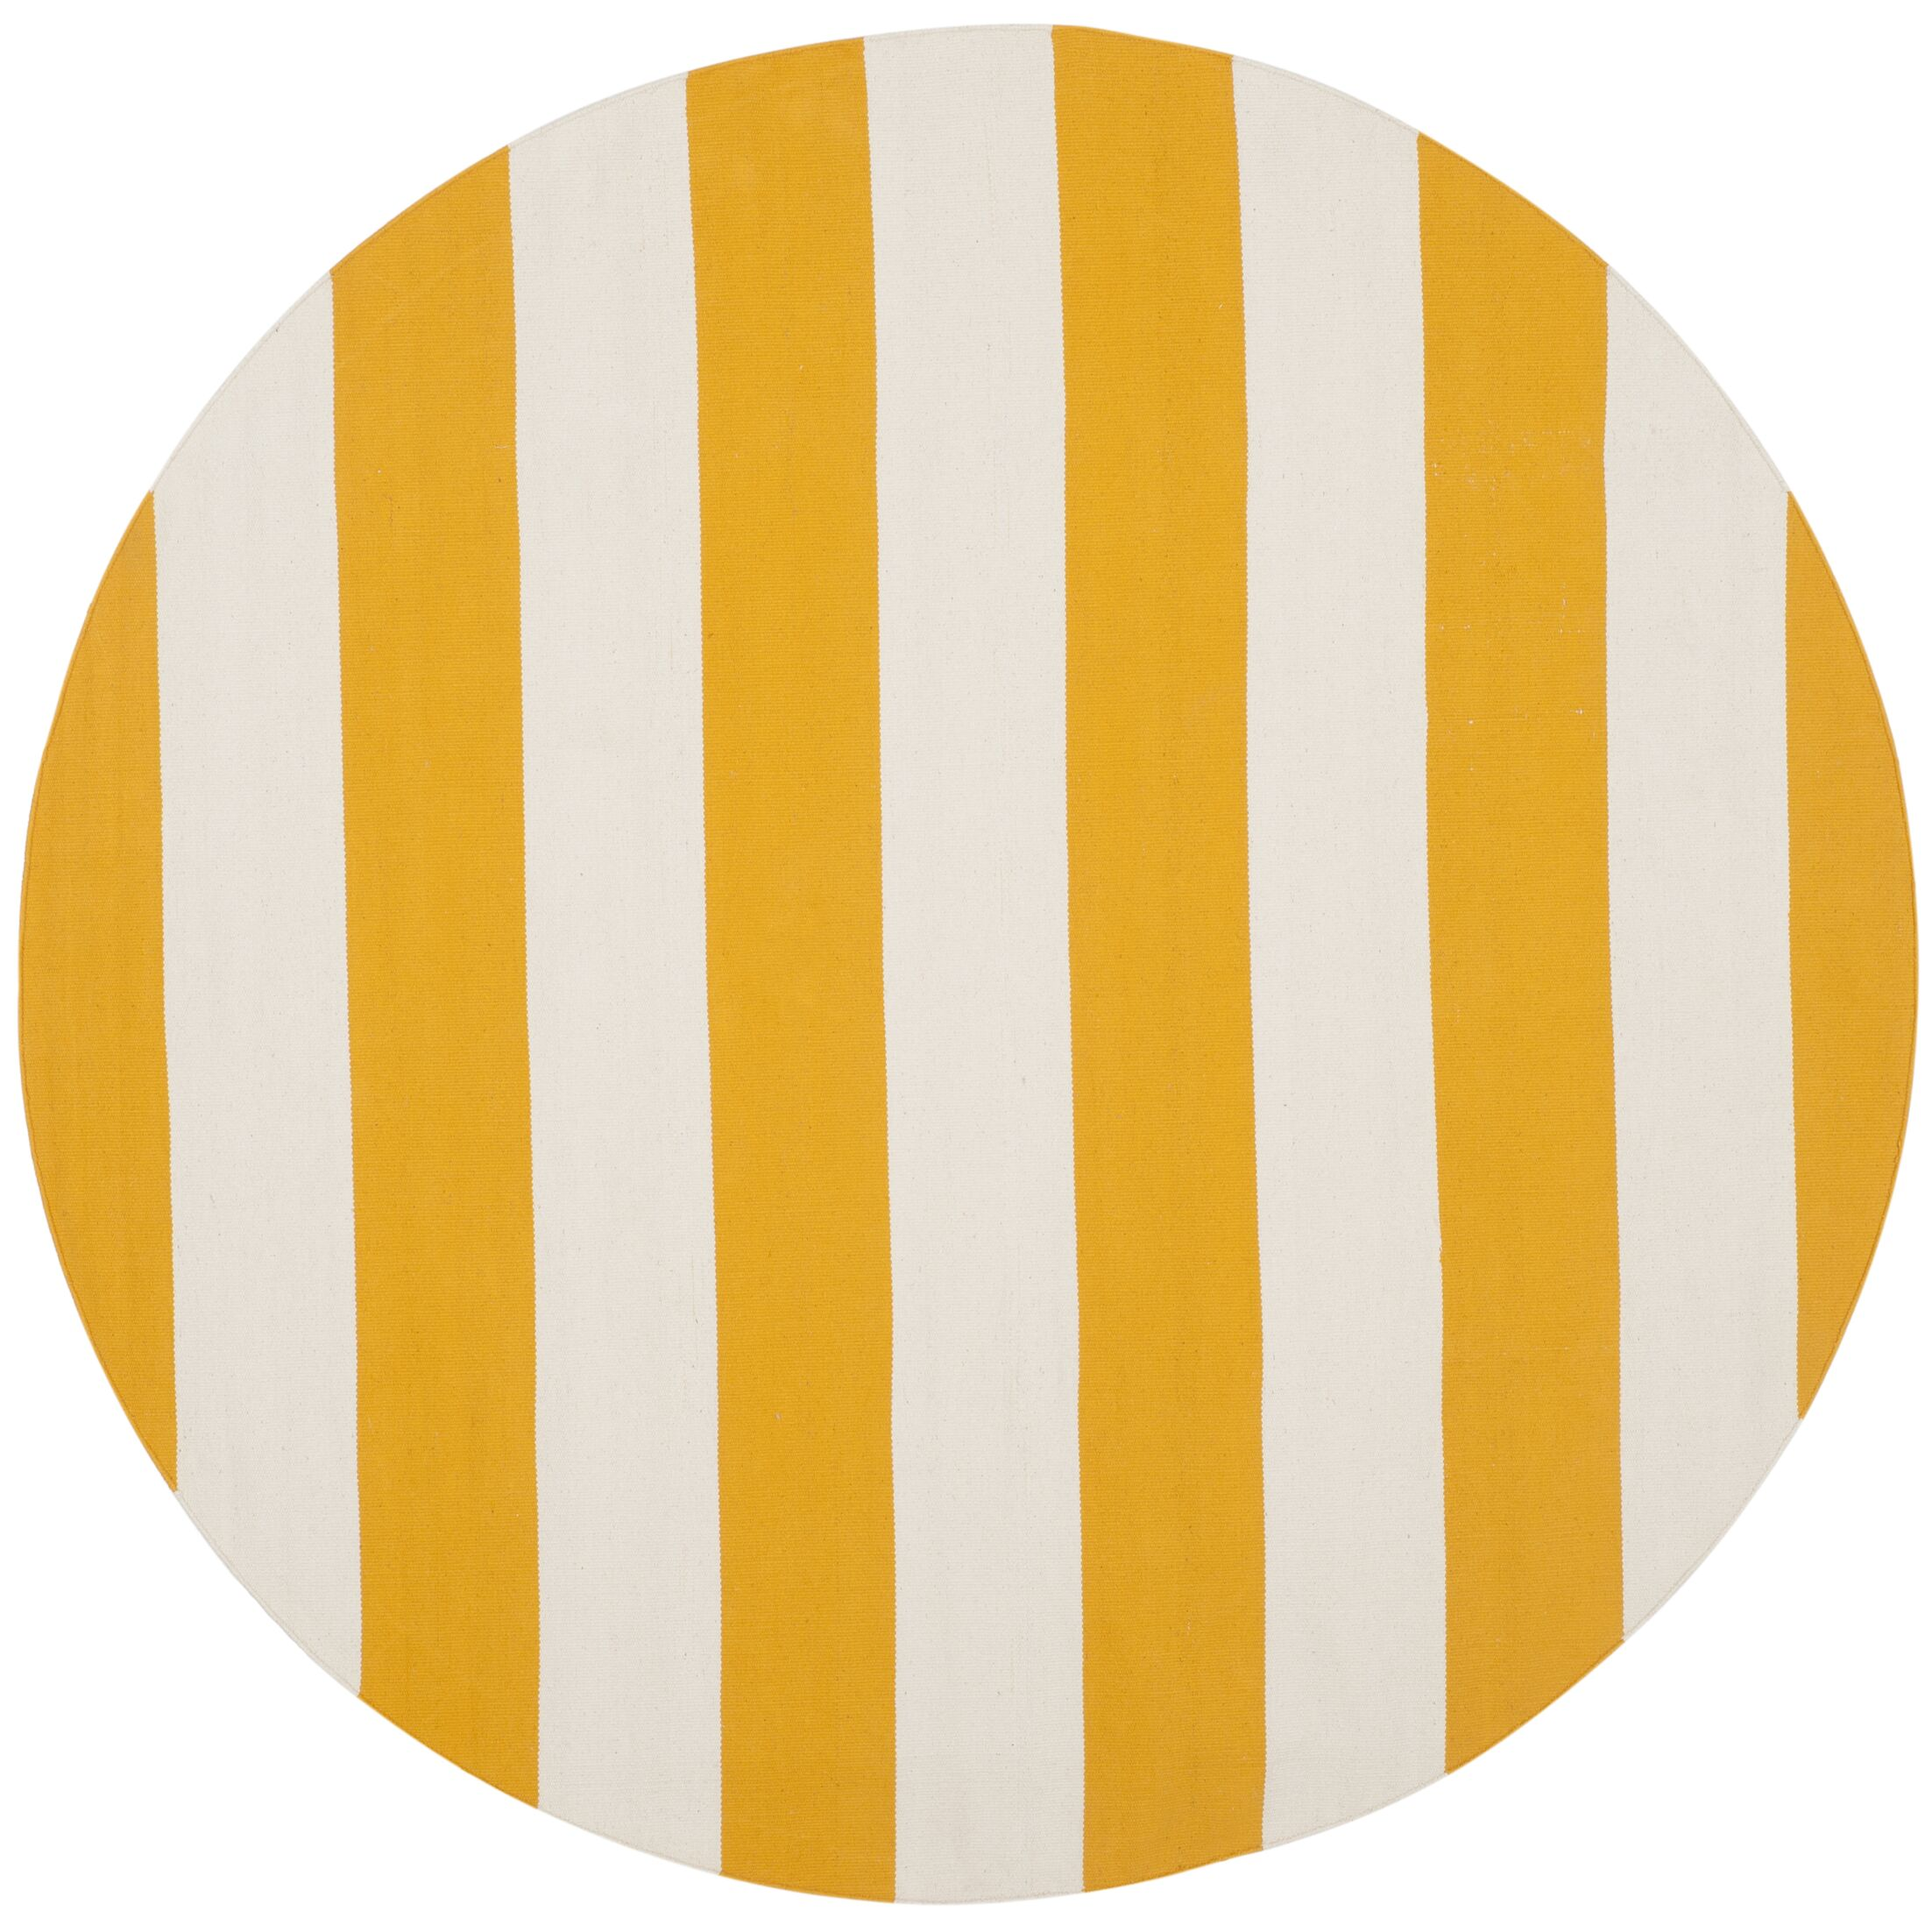 Ike Hand-Woven Yellow/White Area Rug Rug Size: Round 8'